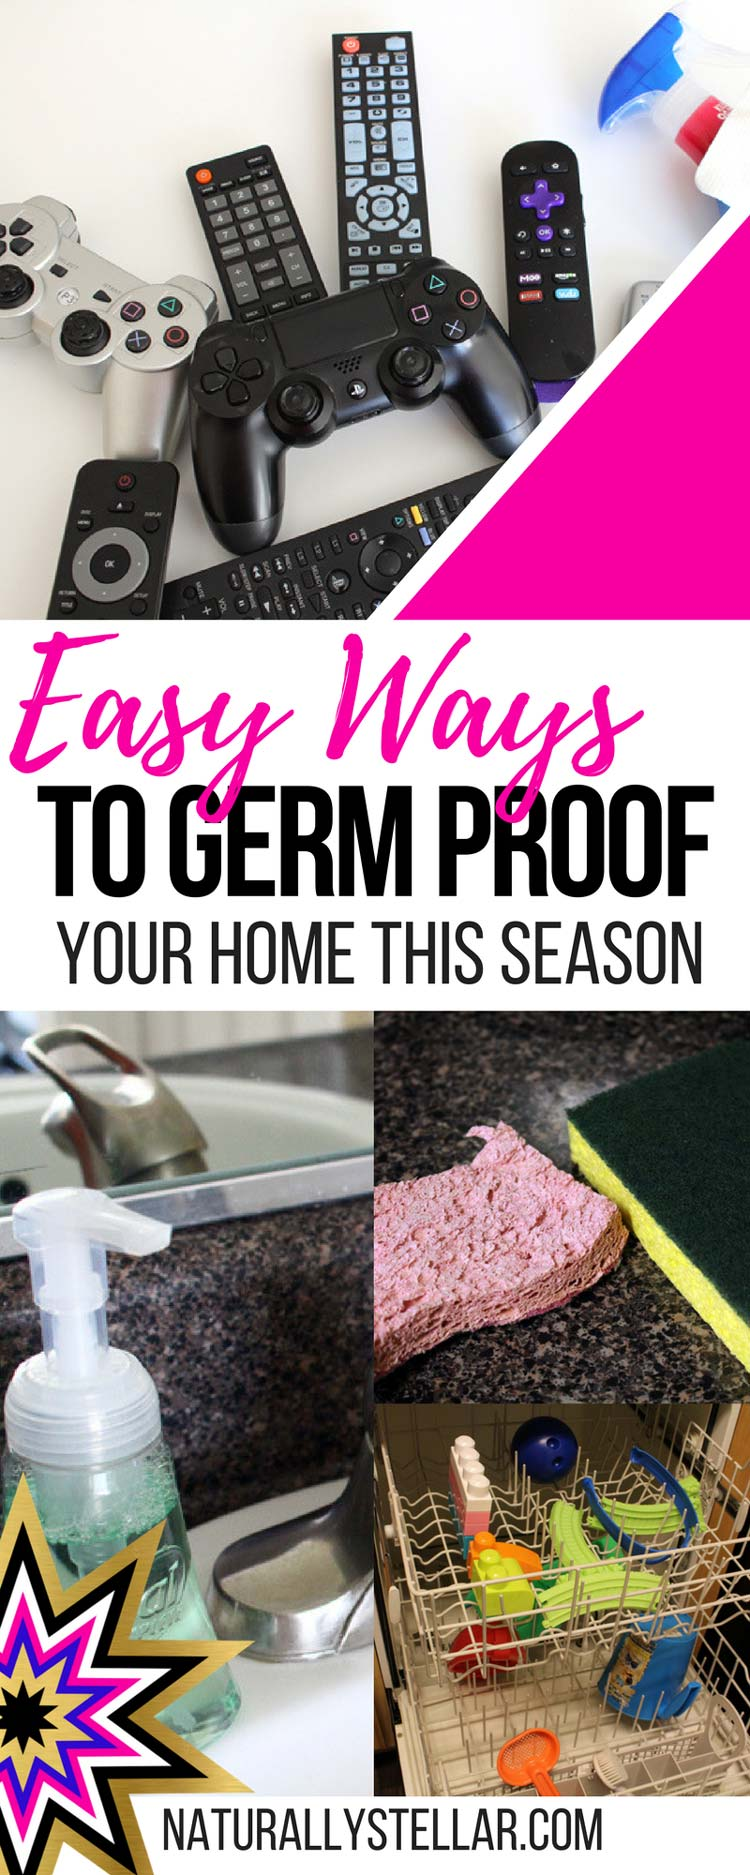 Easy Ways To Germ Proof Your Home   Naturally Stellar